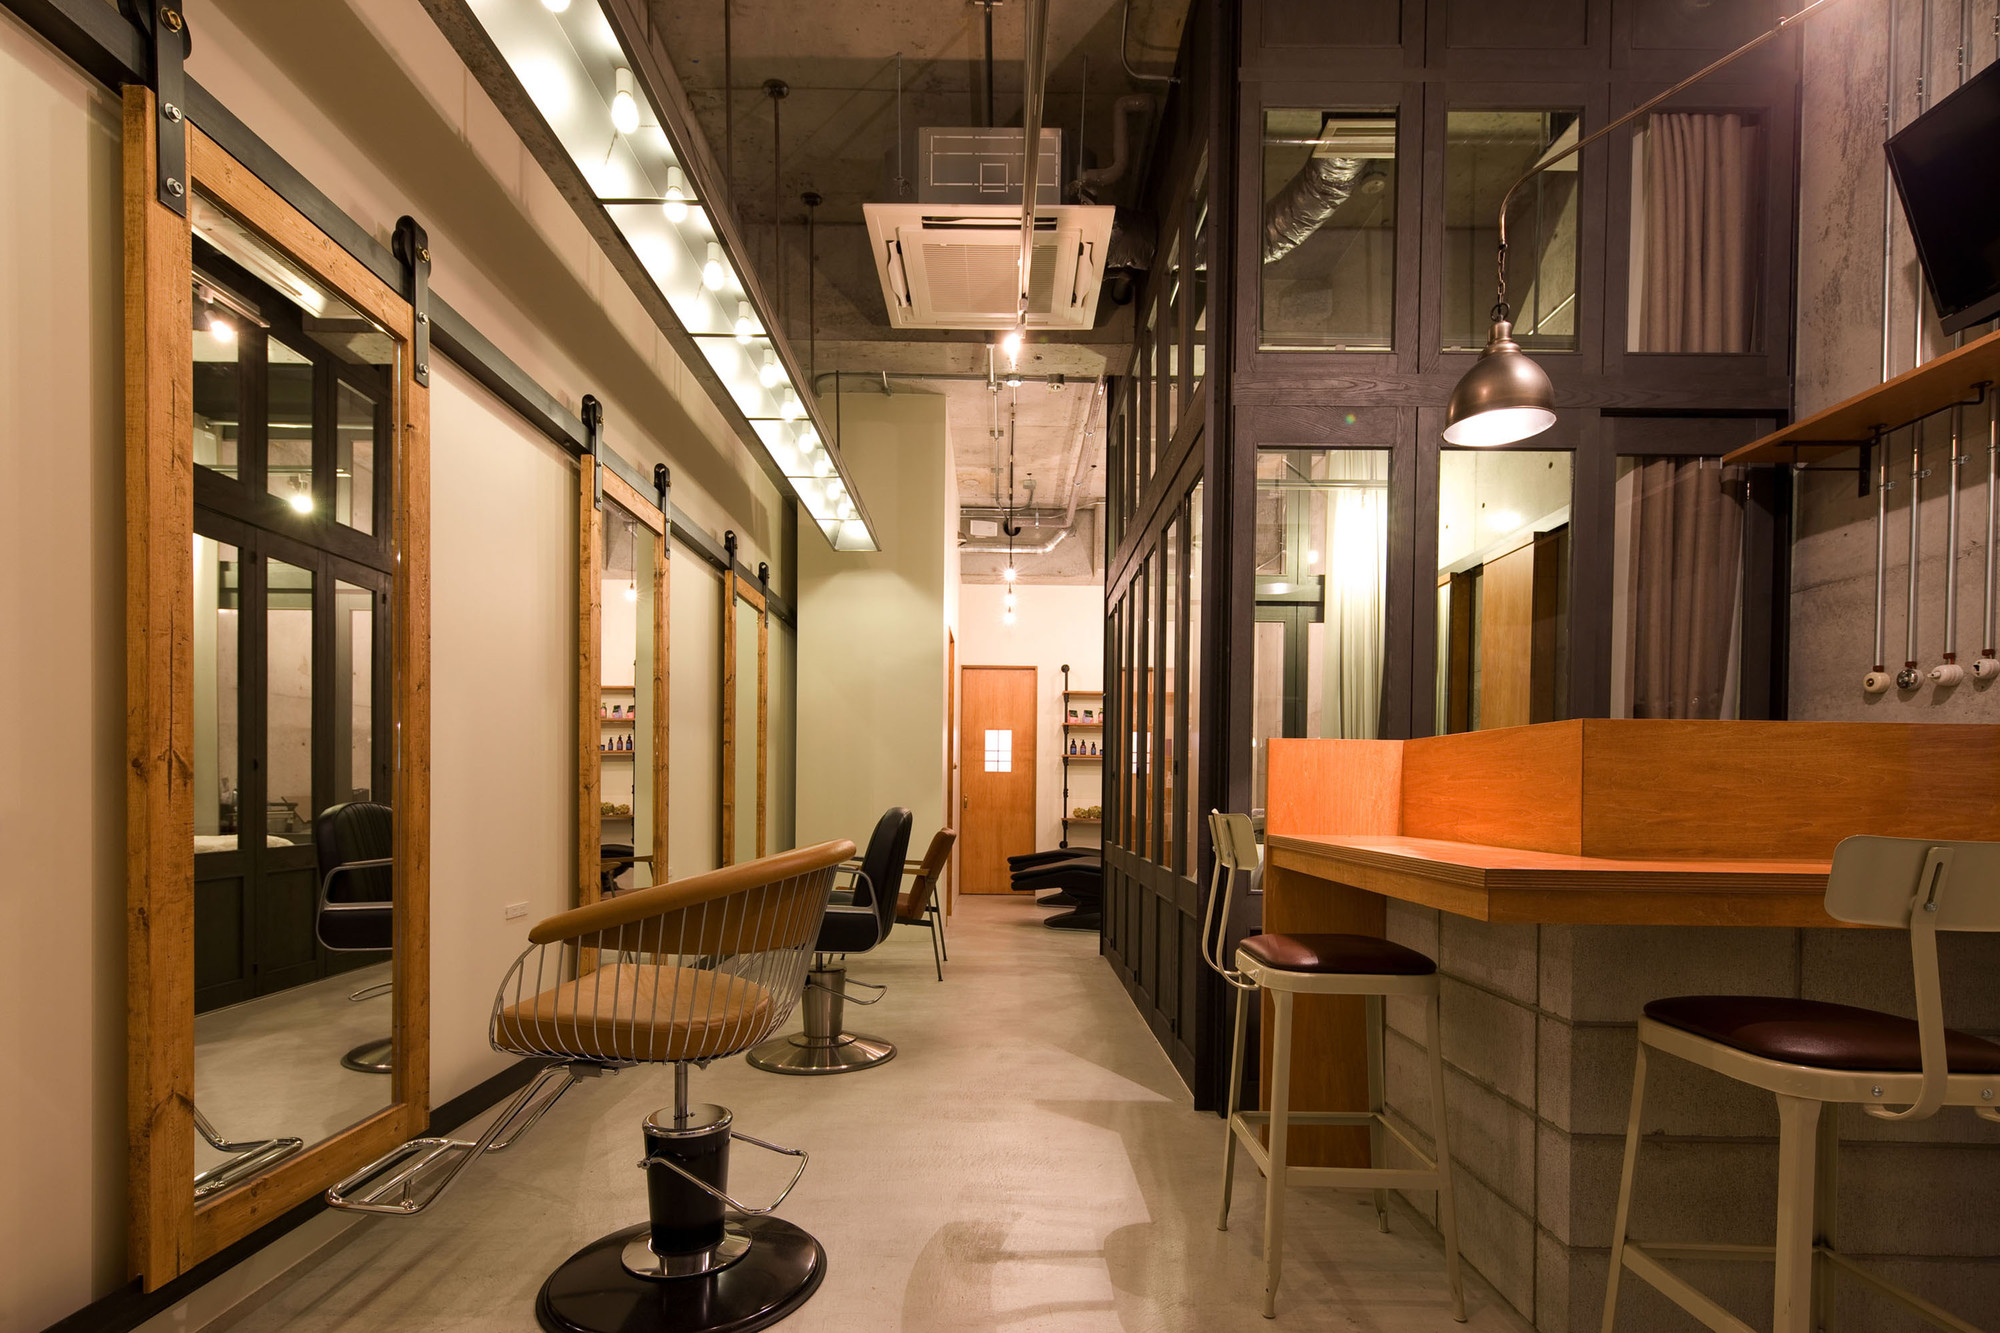 Salon Architecture Ki Se Tsu Hair Salon Iks Design Archdaily